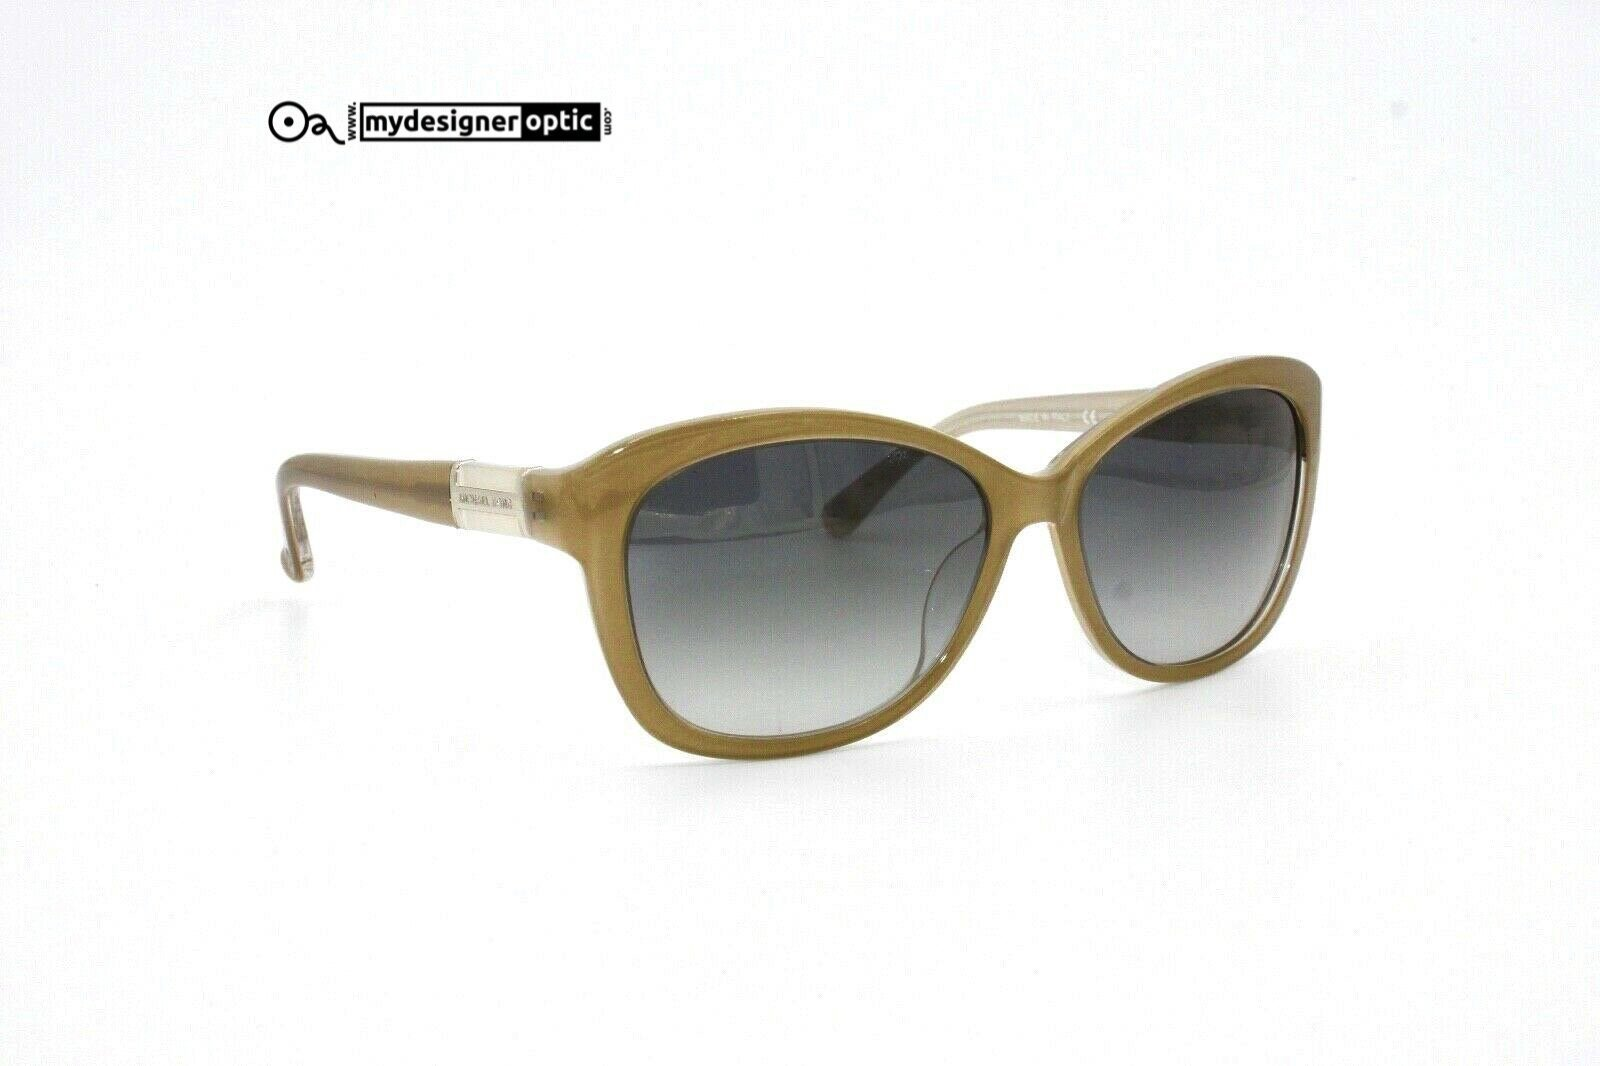 Michael Kors Sunglasses Melissa MKS821 239 58 16 125 Made in Italy - Mydesigneroptic